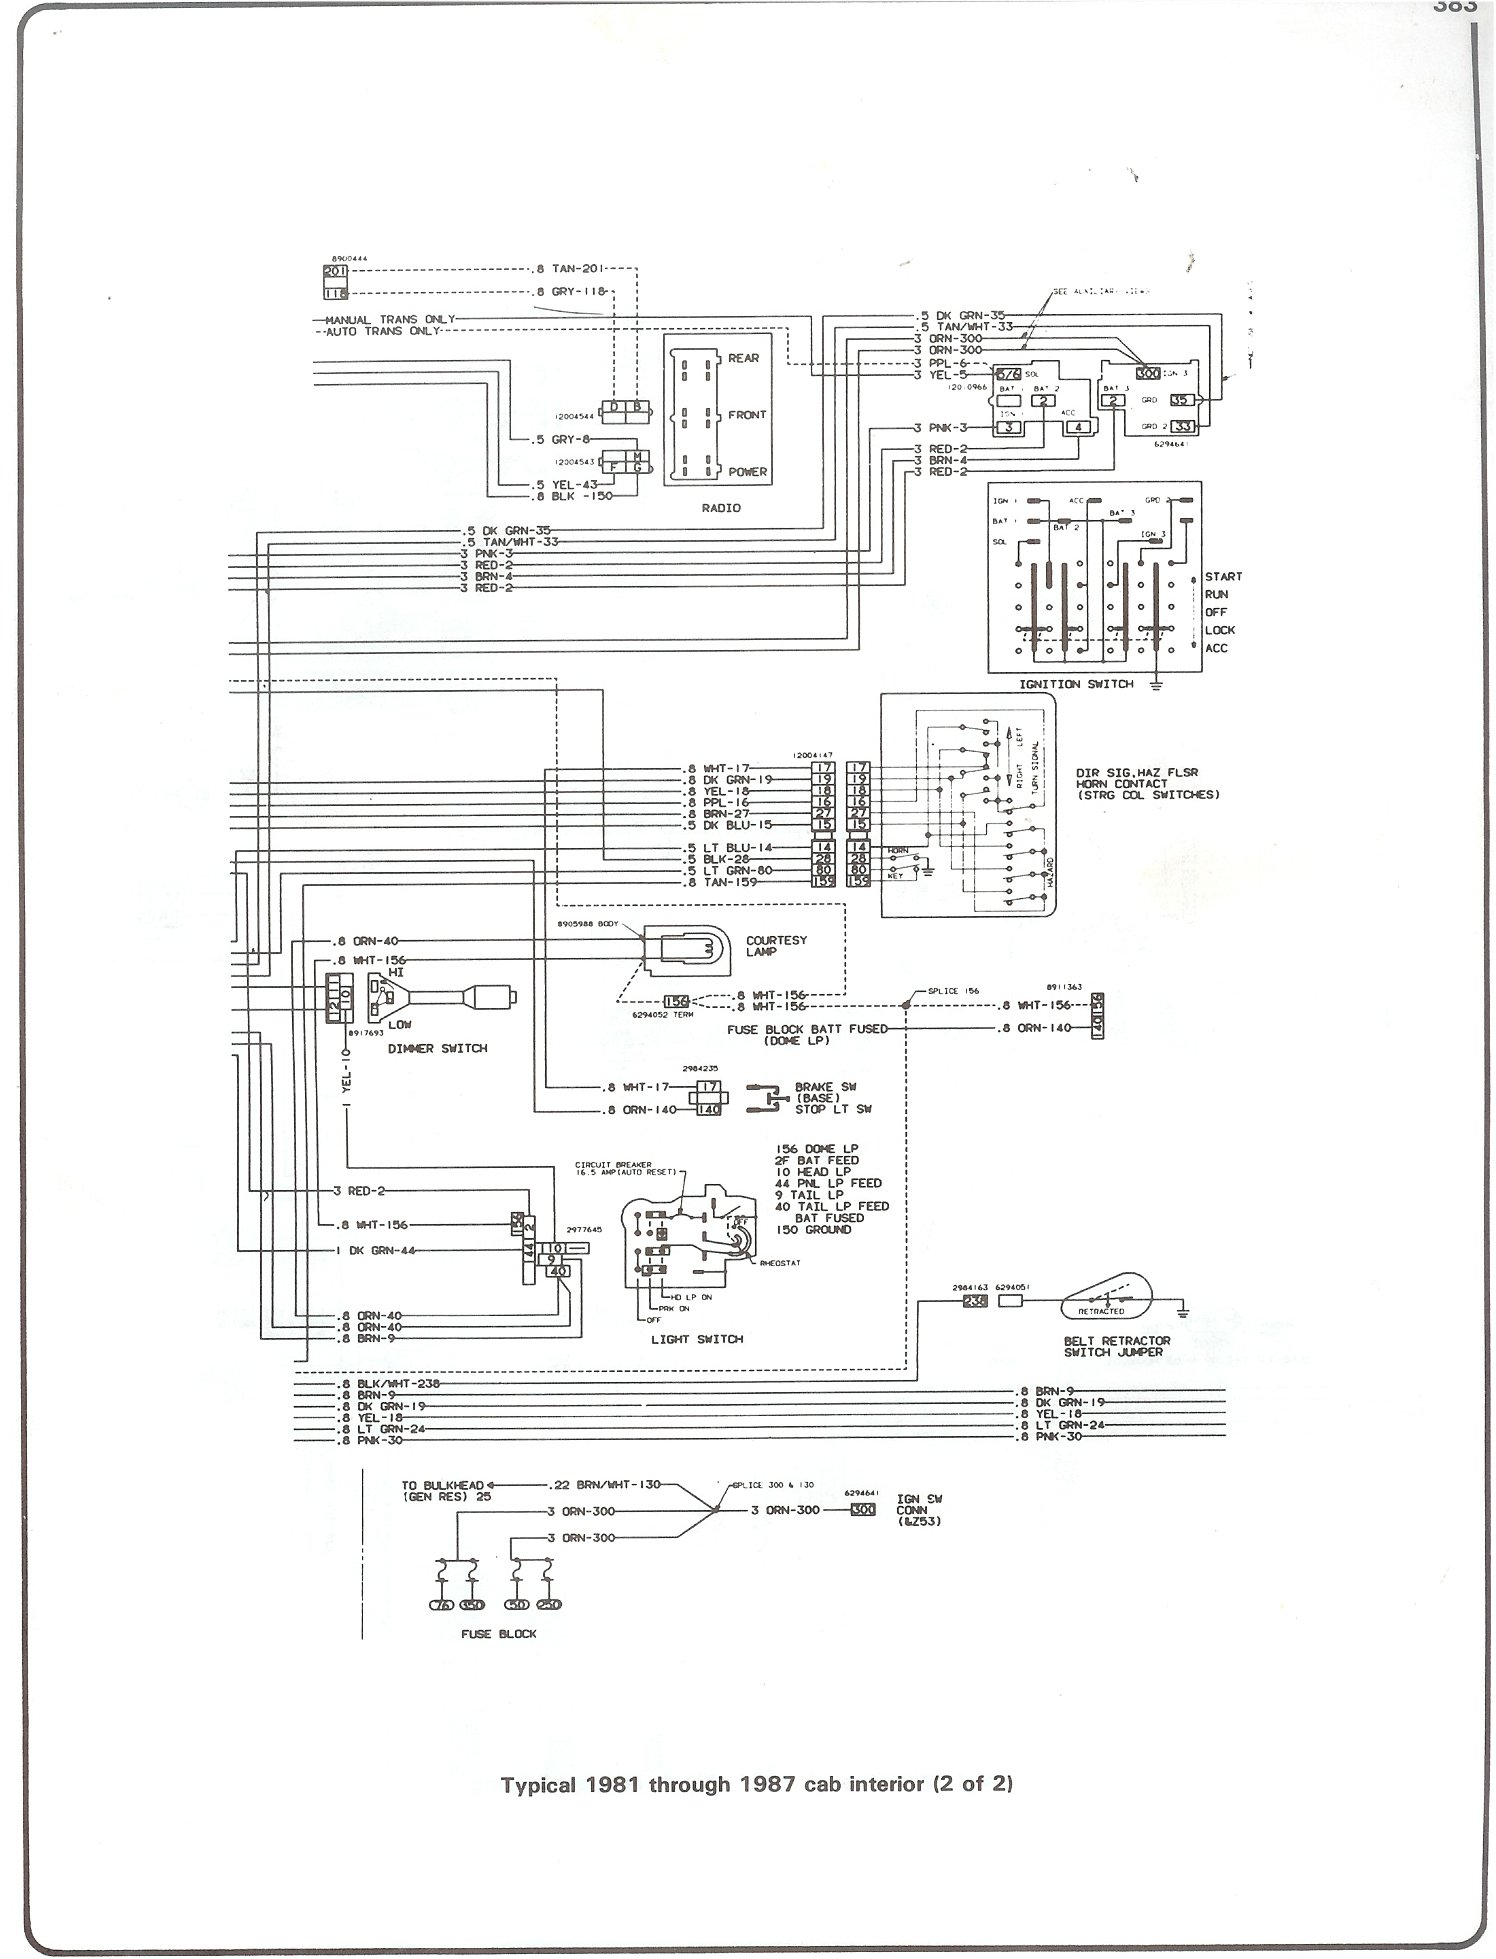 81 87_cab_inter_pg2 complete 73 87 wiring diagrams 1985 chevy caprice wiring diagram at bayanpartner.co